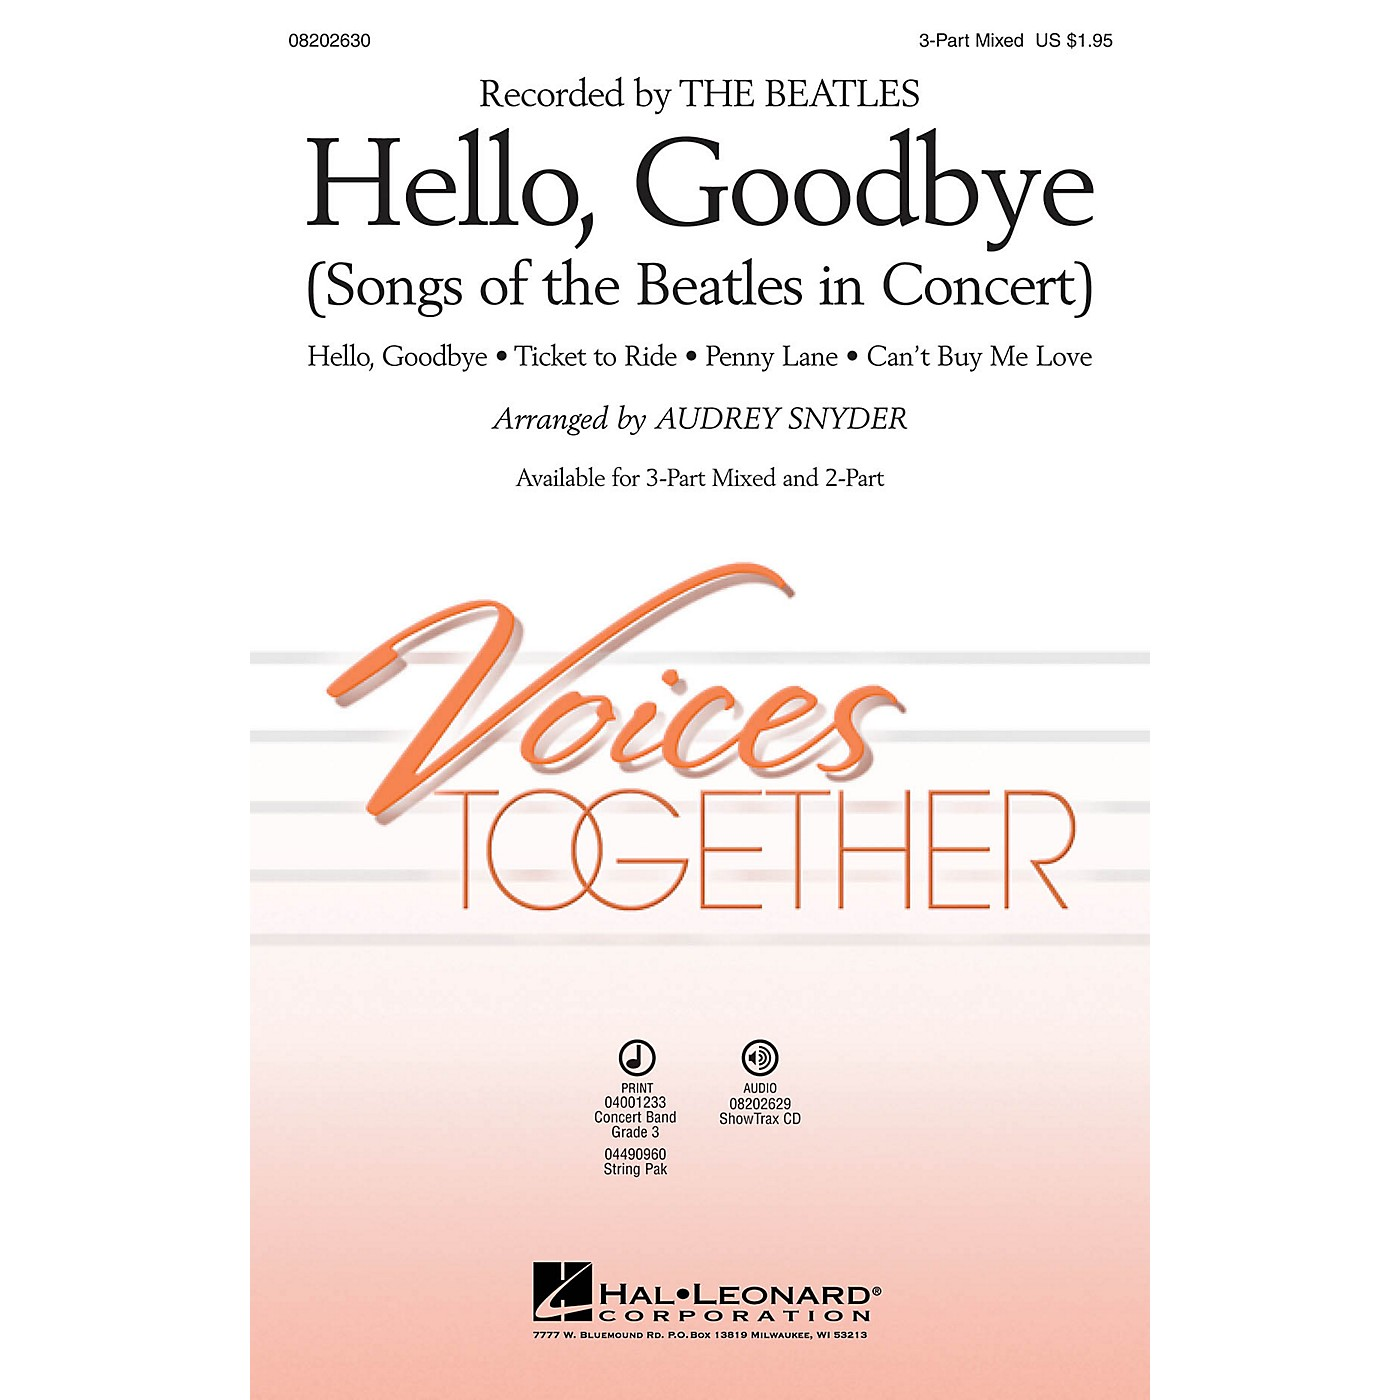 Hal Leonard Hello, Goodbye (Songs of the Beatles in Concert) 3-Part Mixed arranged by Audrey Snyder thumbnail